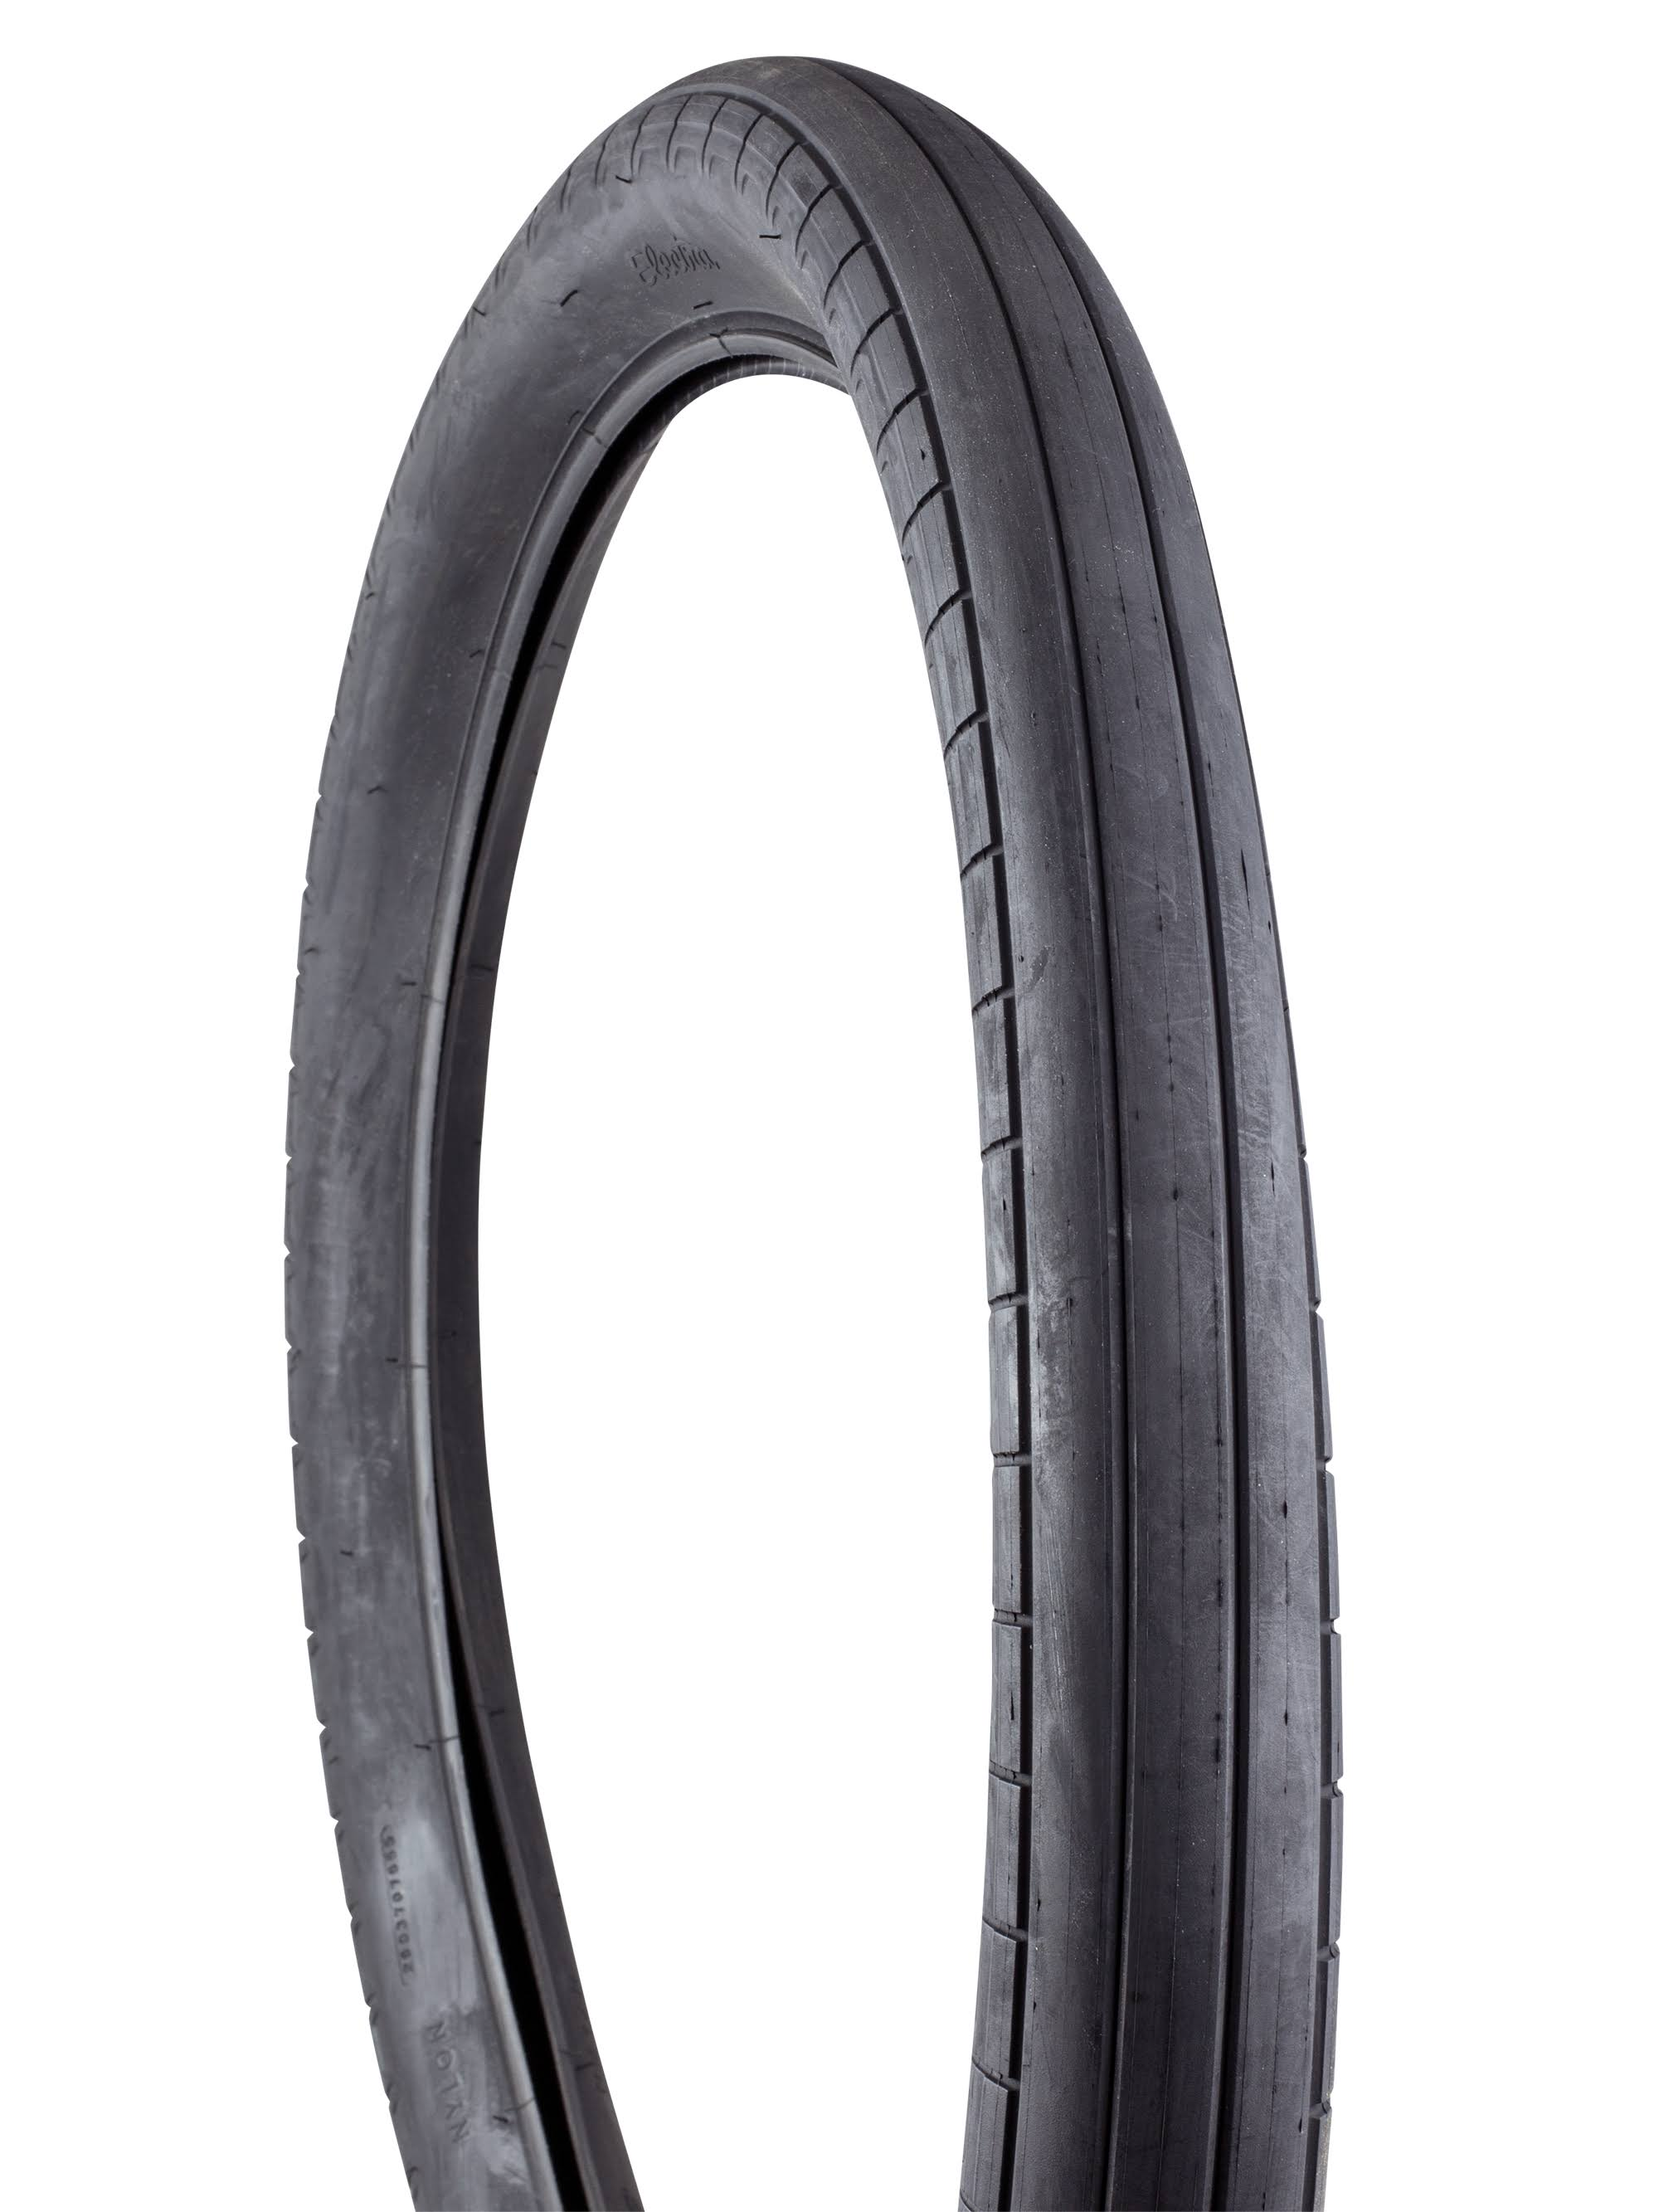 Electra Lux Fat tyres